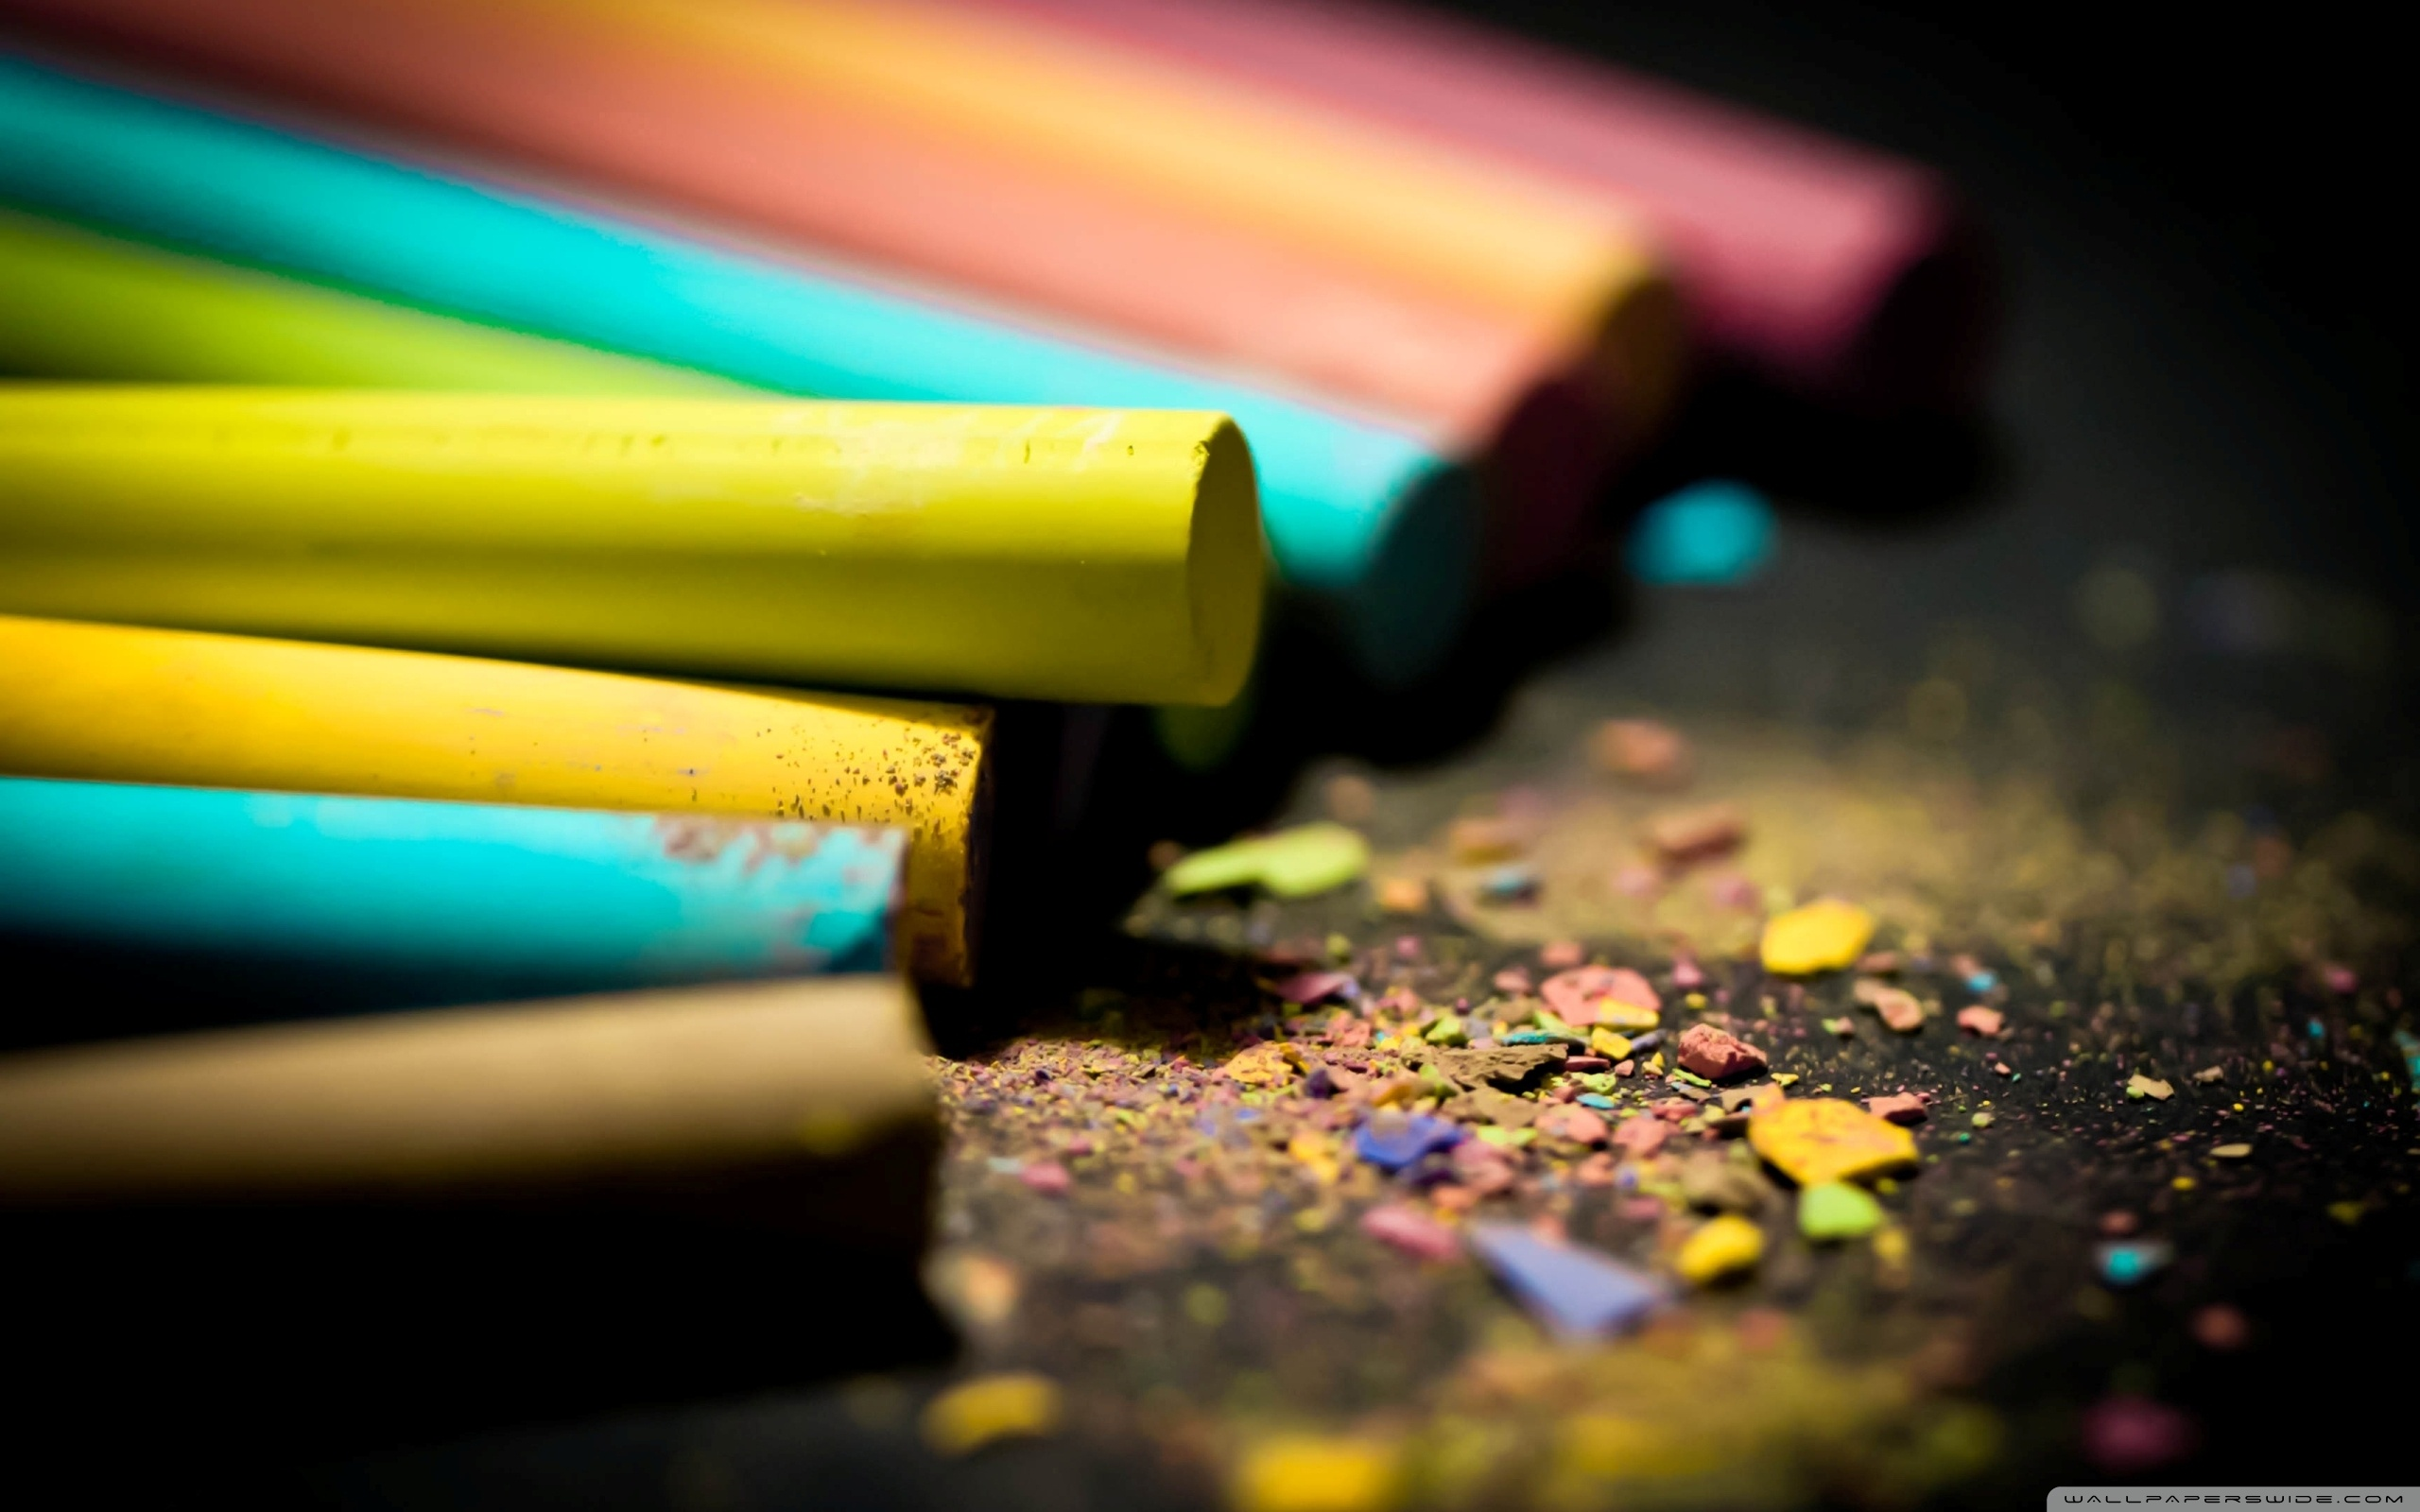 Colored Chalk 4K HD Desktop Wallpaper for 4K Ultra HD TV Dual 2560x1600